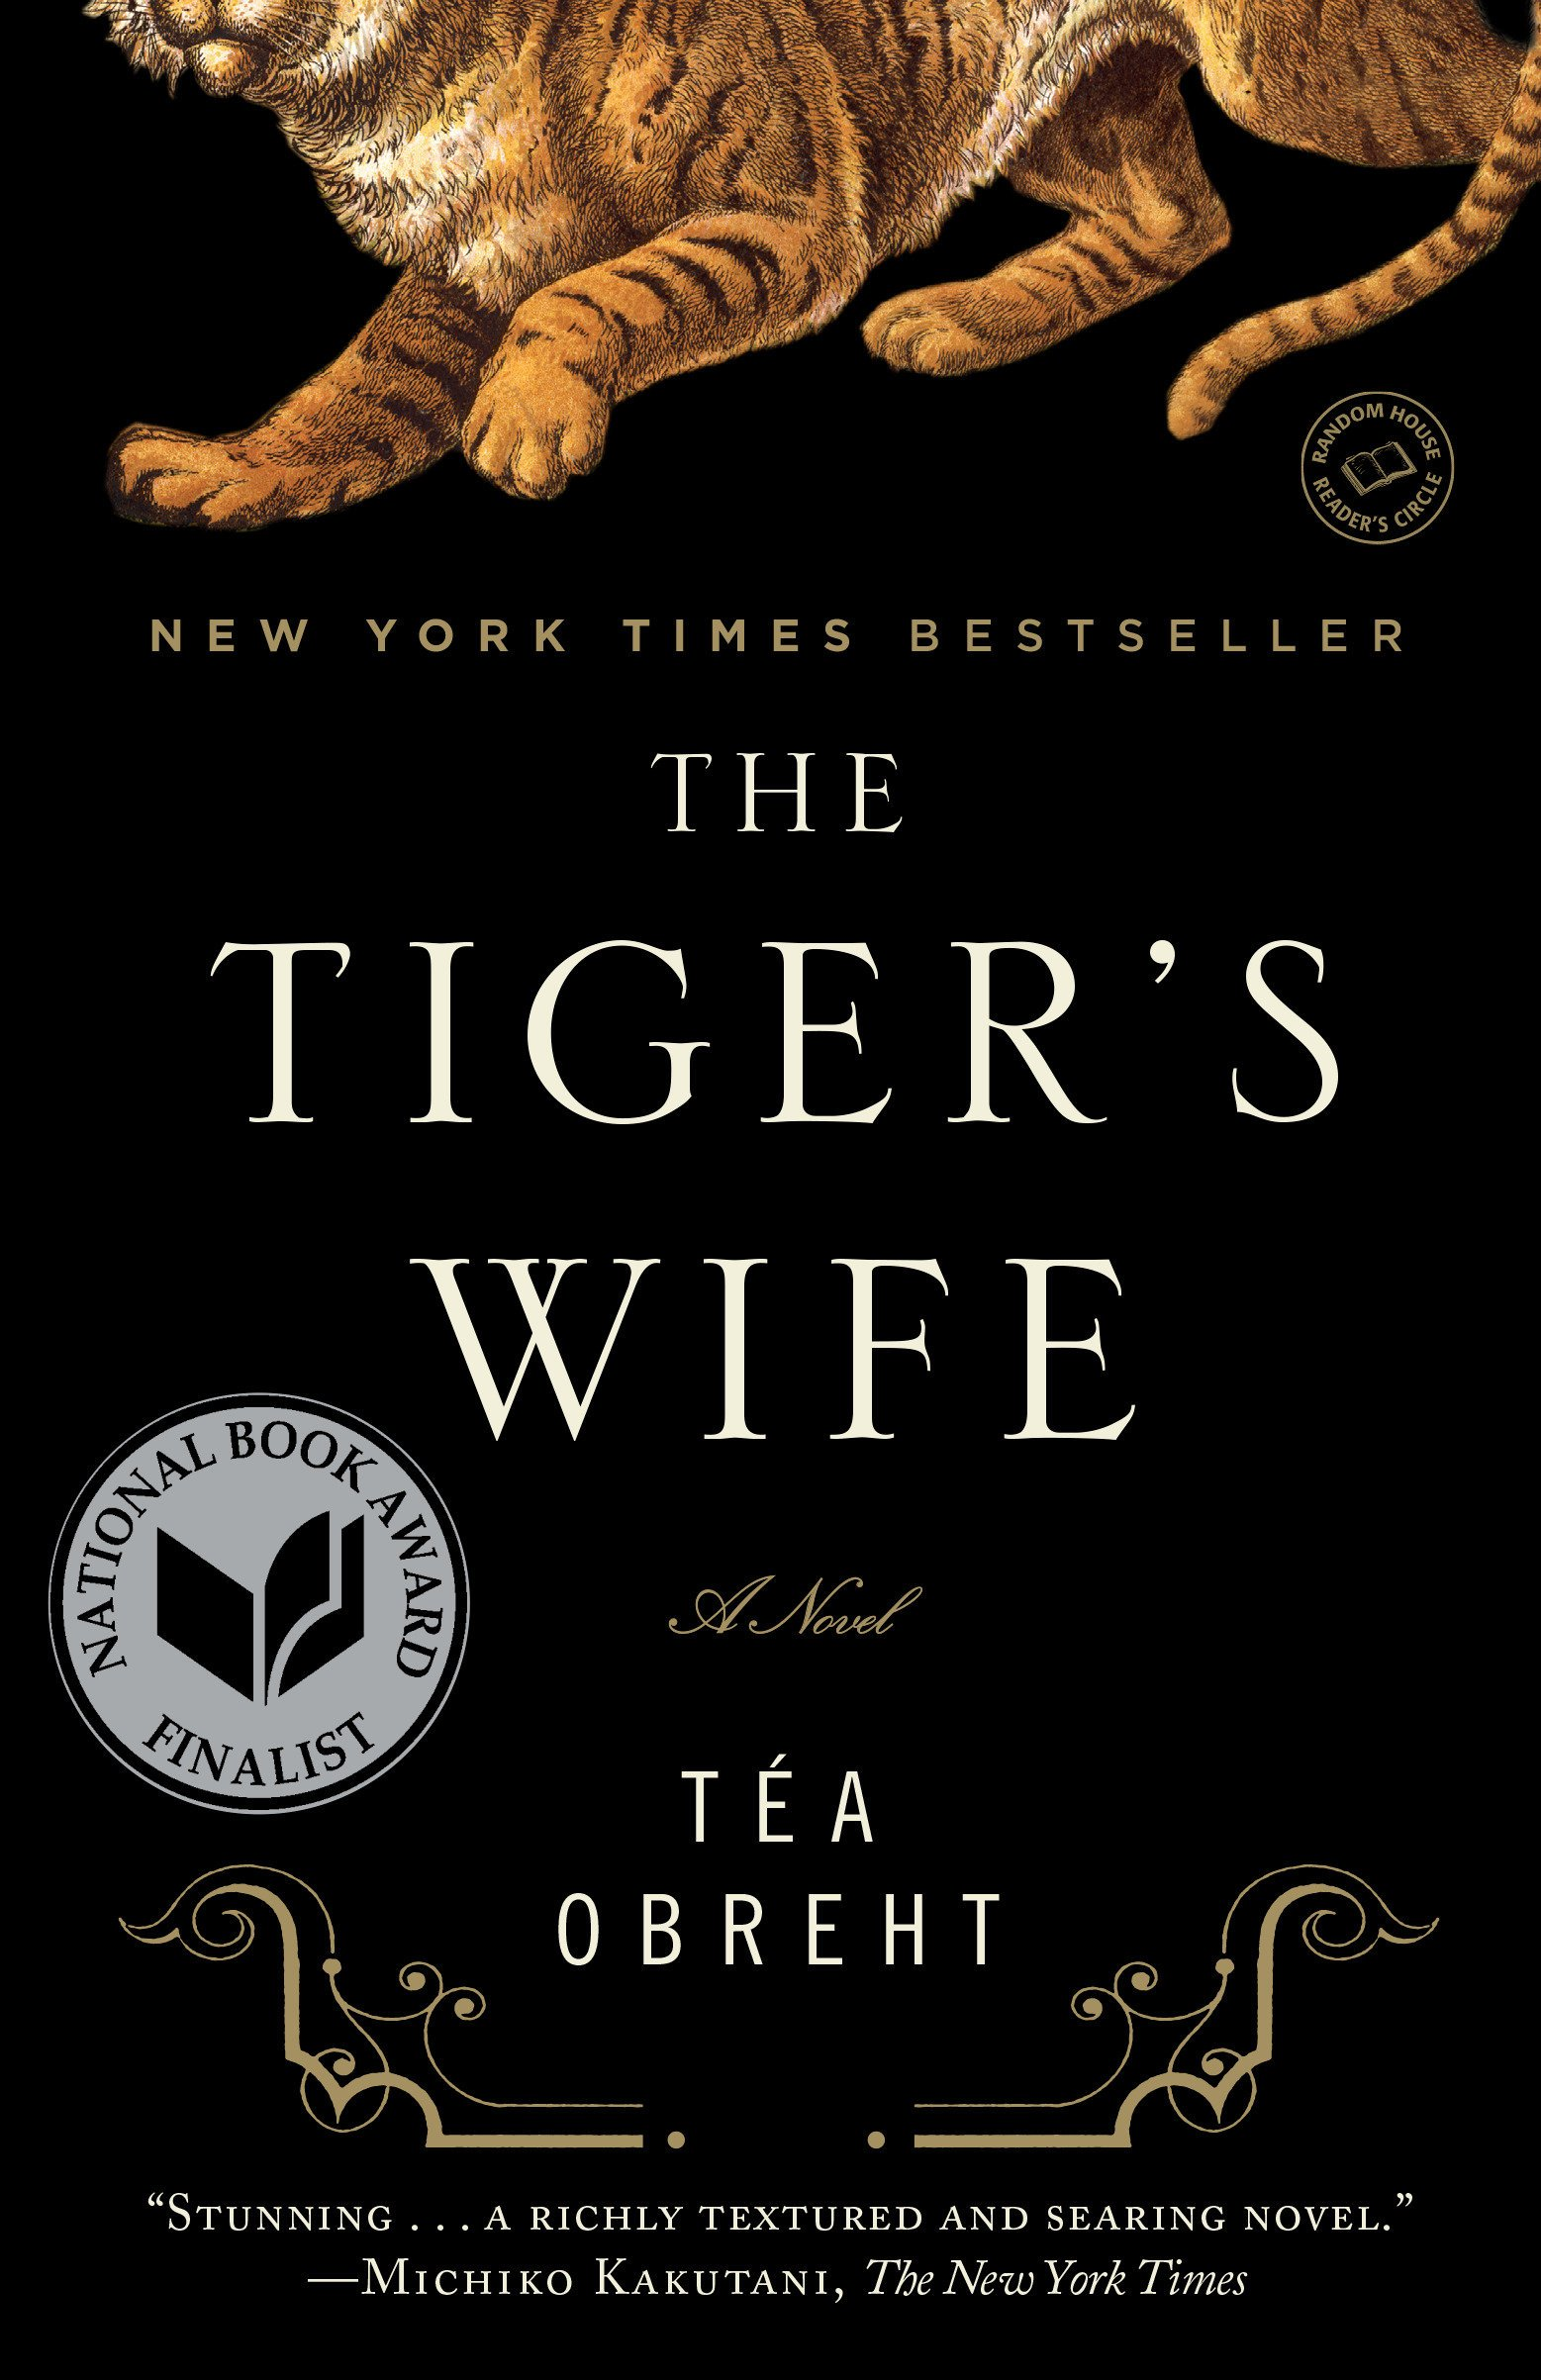 Téa Obreht, The Tiger's Wife